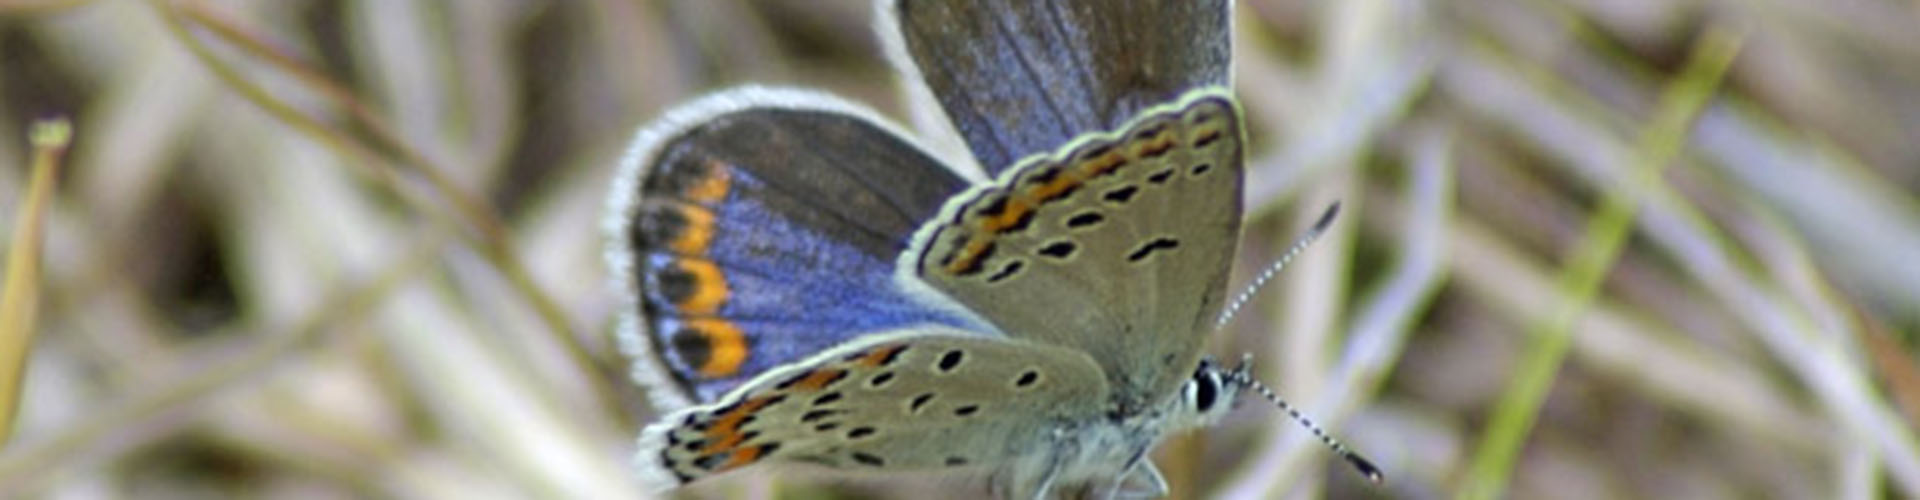 Help protect the Karner Blue Butterfly